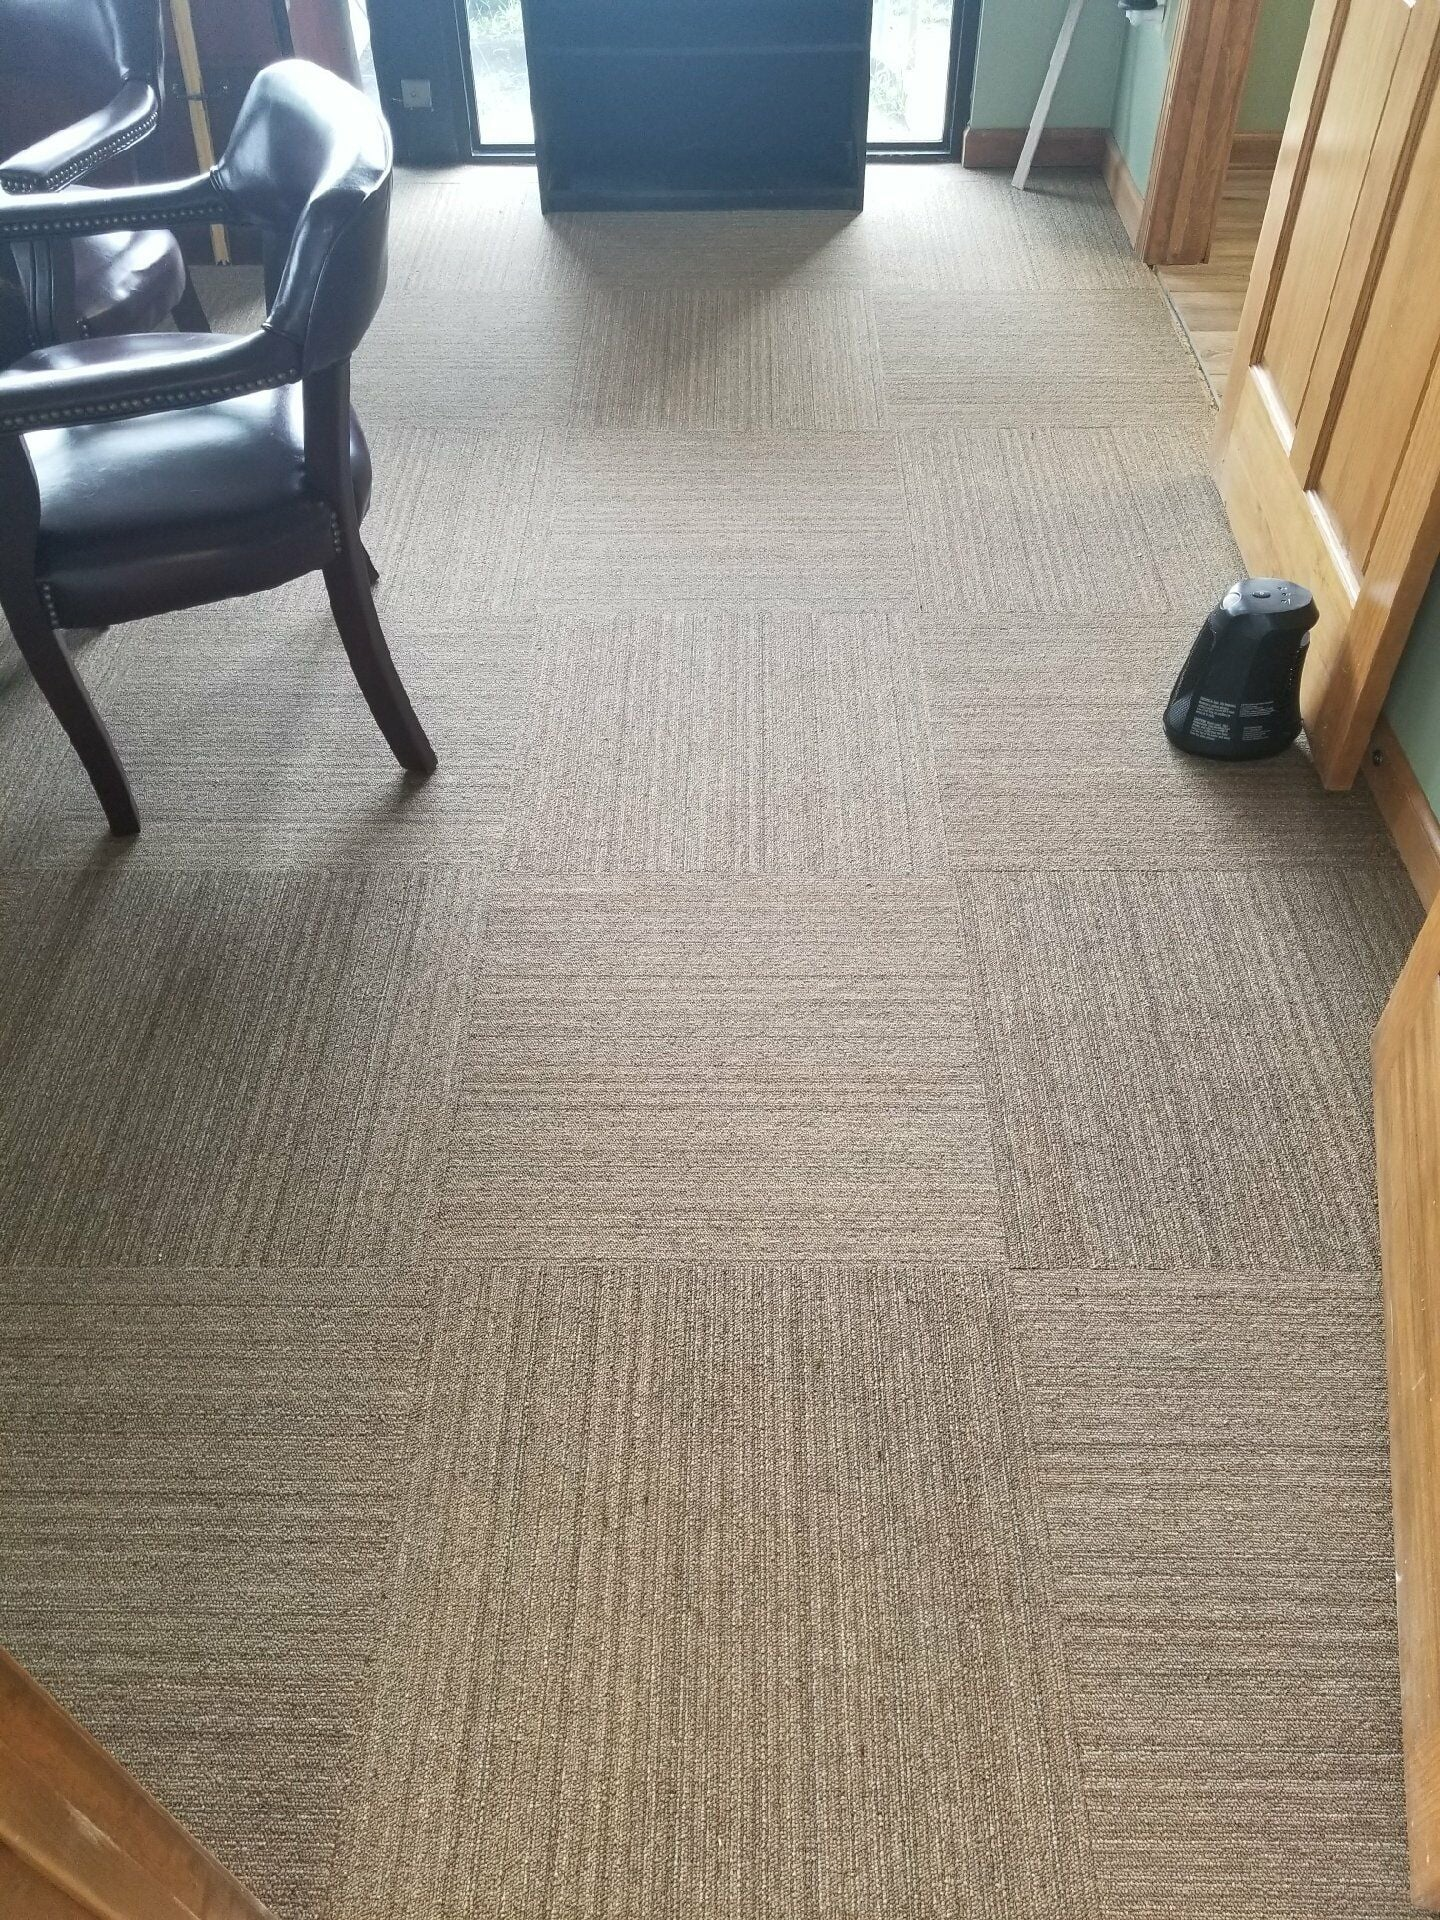 Carpet tiles from Roop's Carpet in Beebe, AR